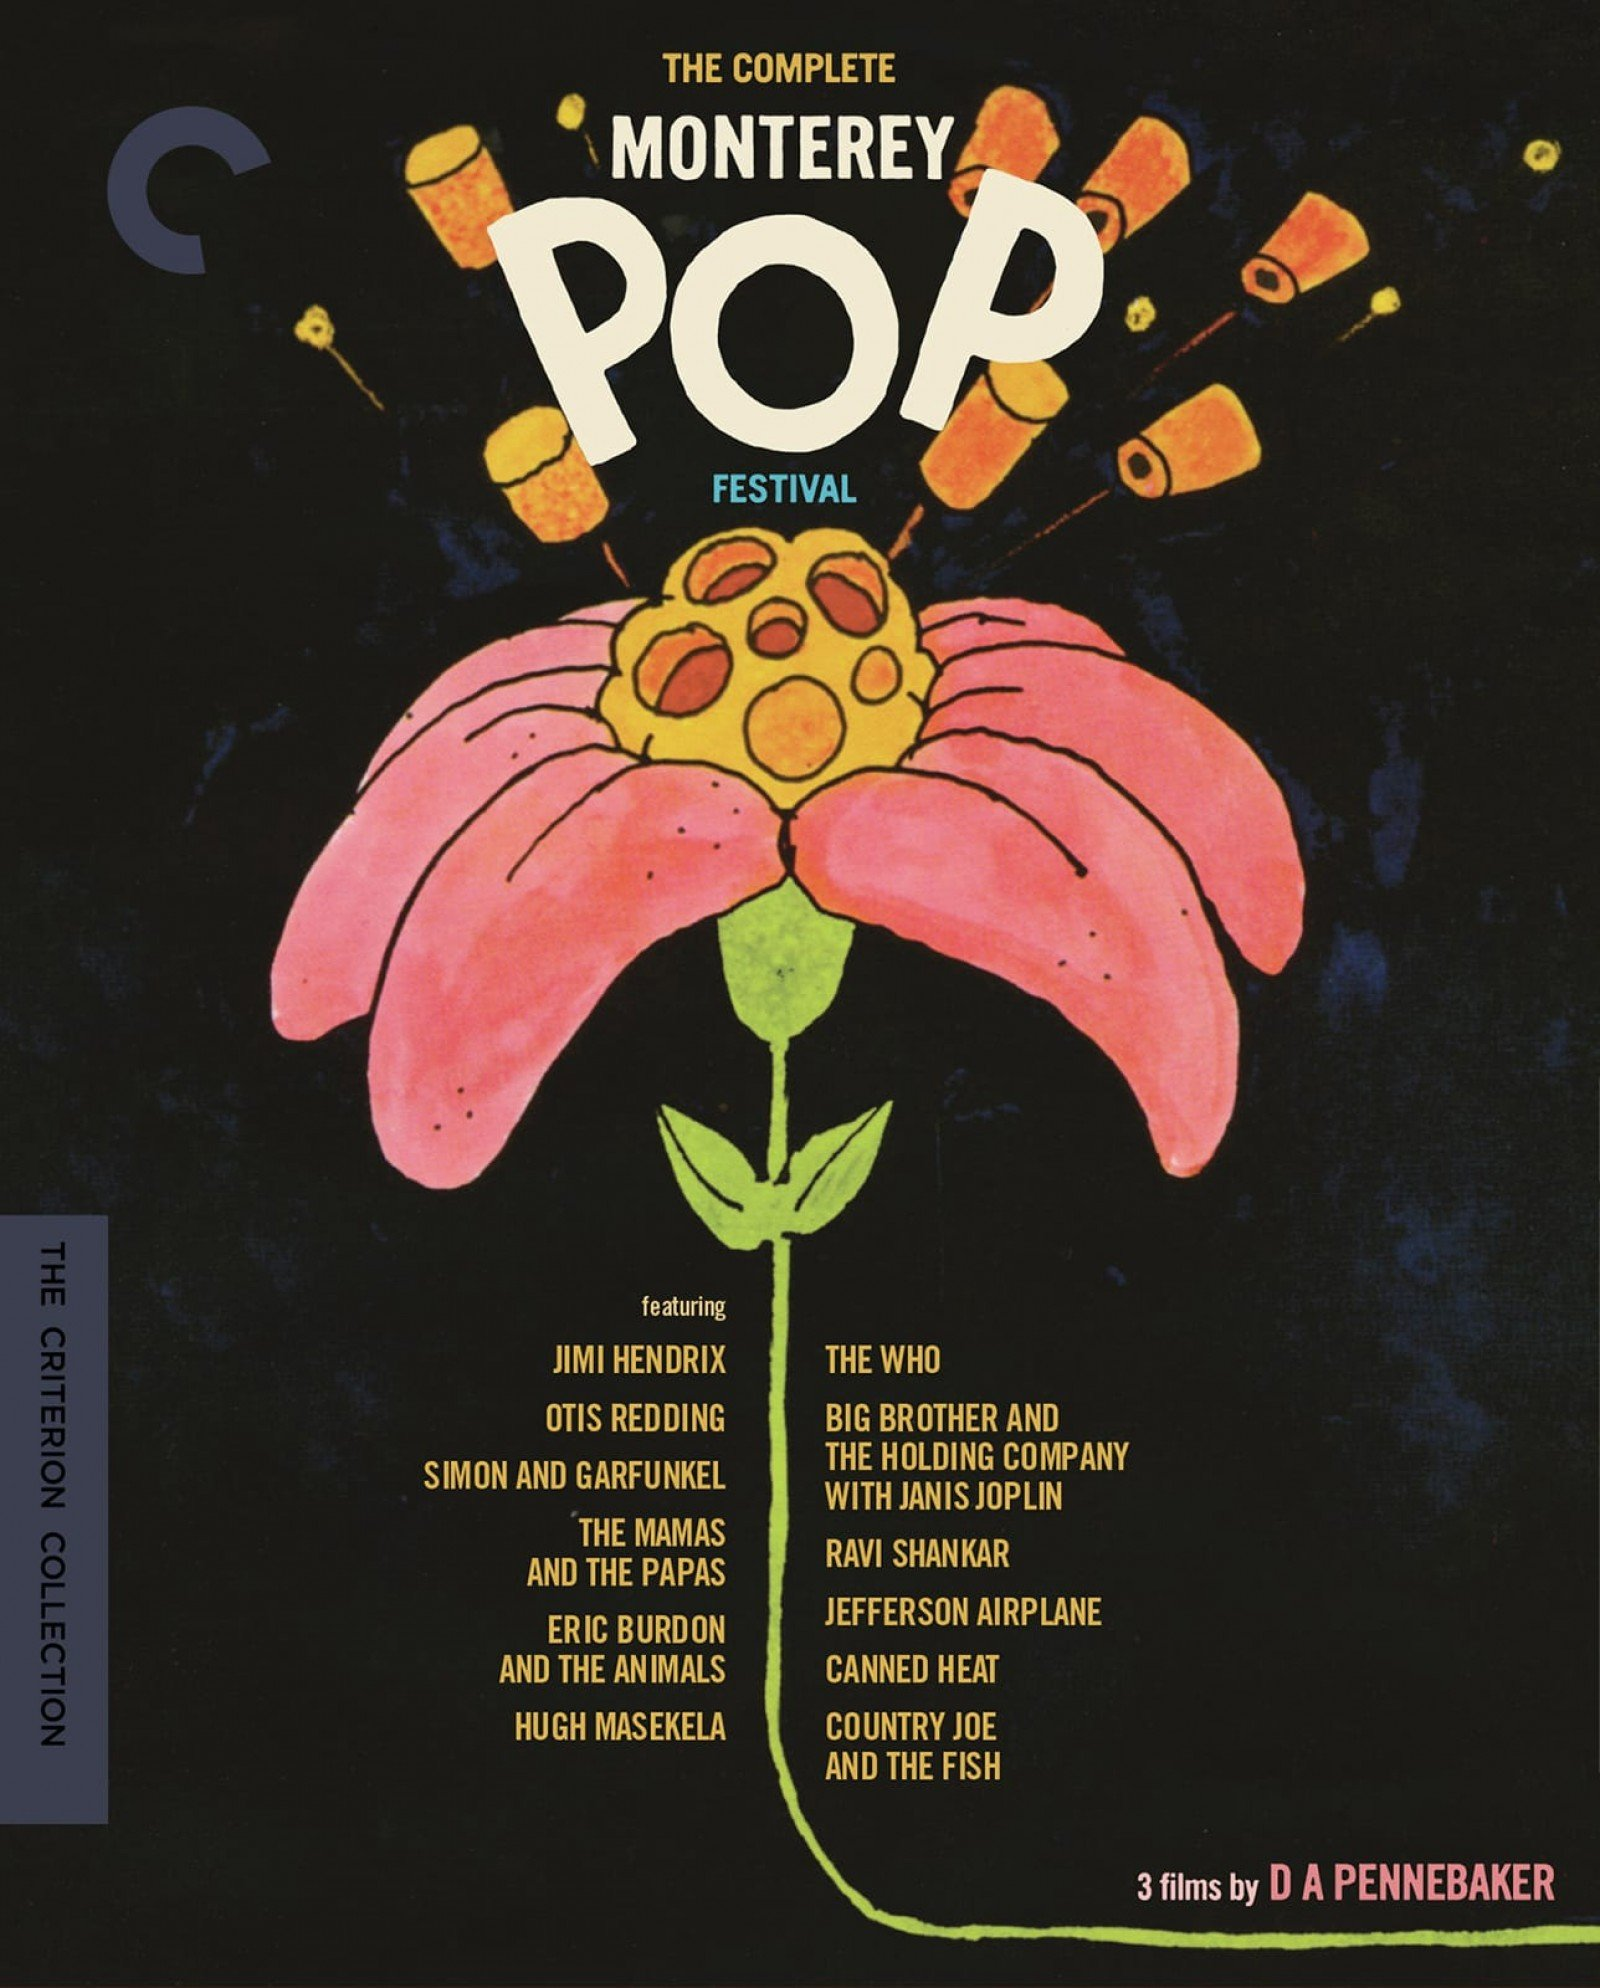 Review: The Complete Monterey Pop Festival on Criterion Blu